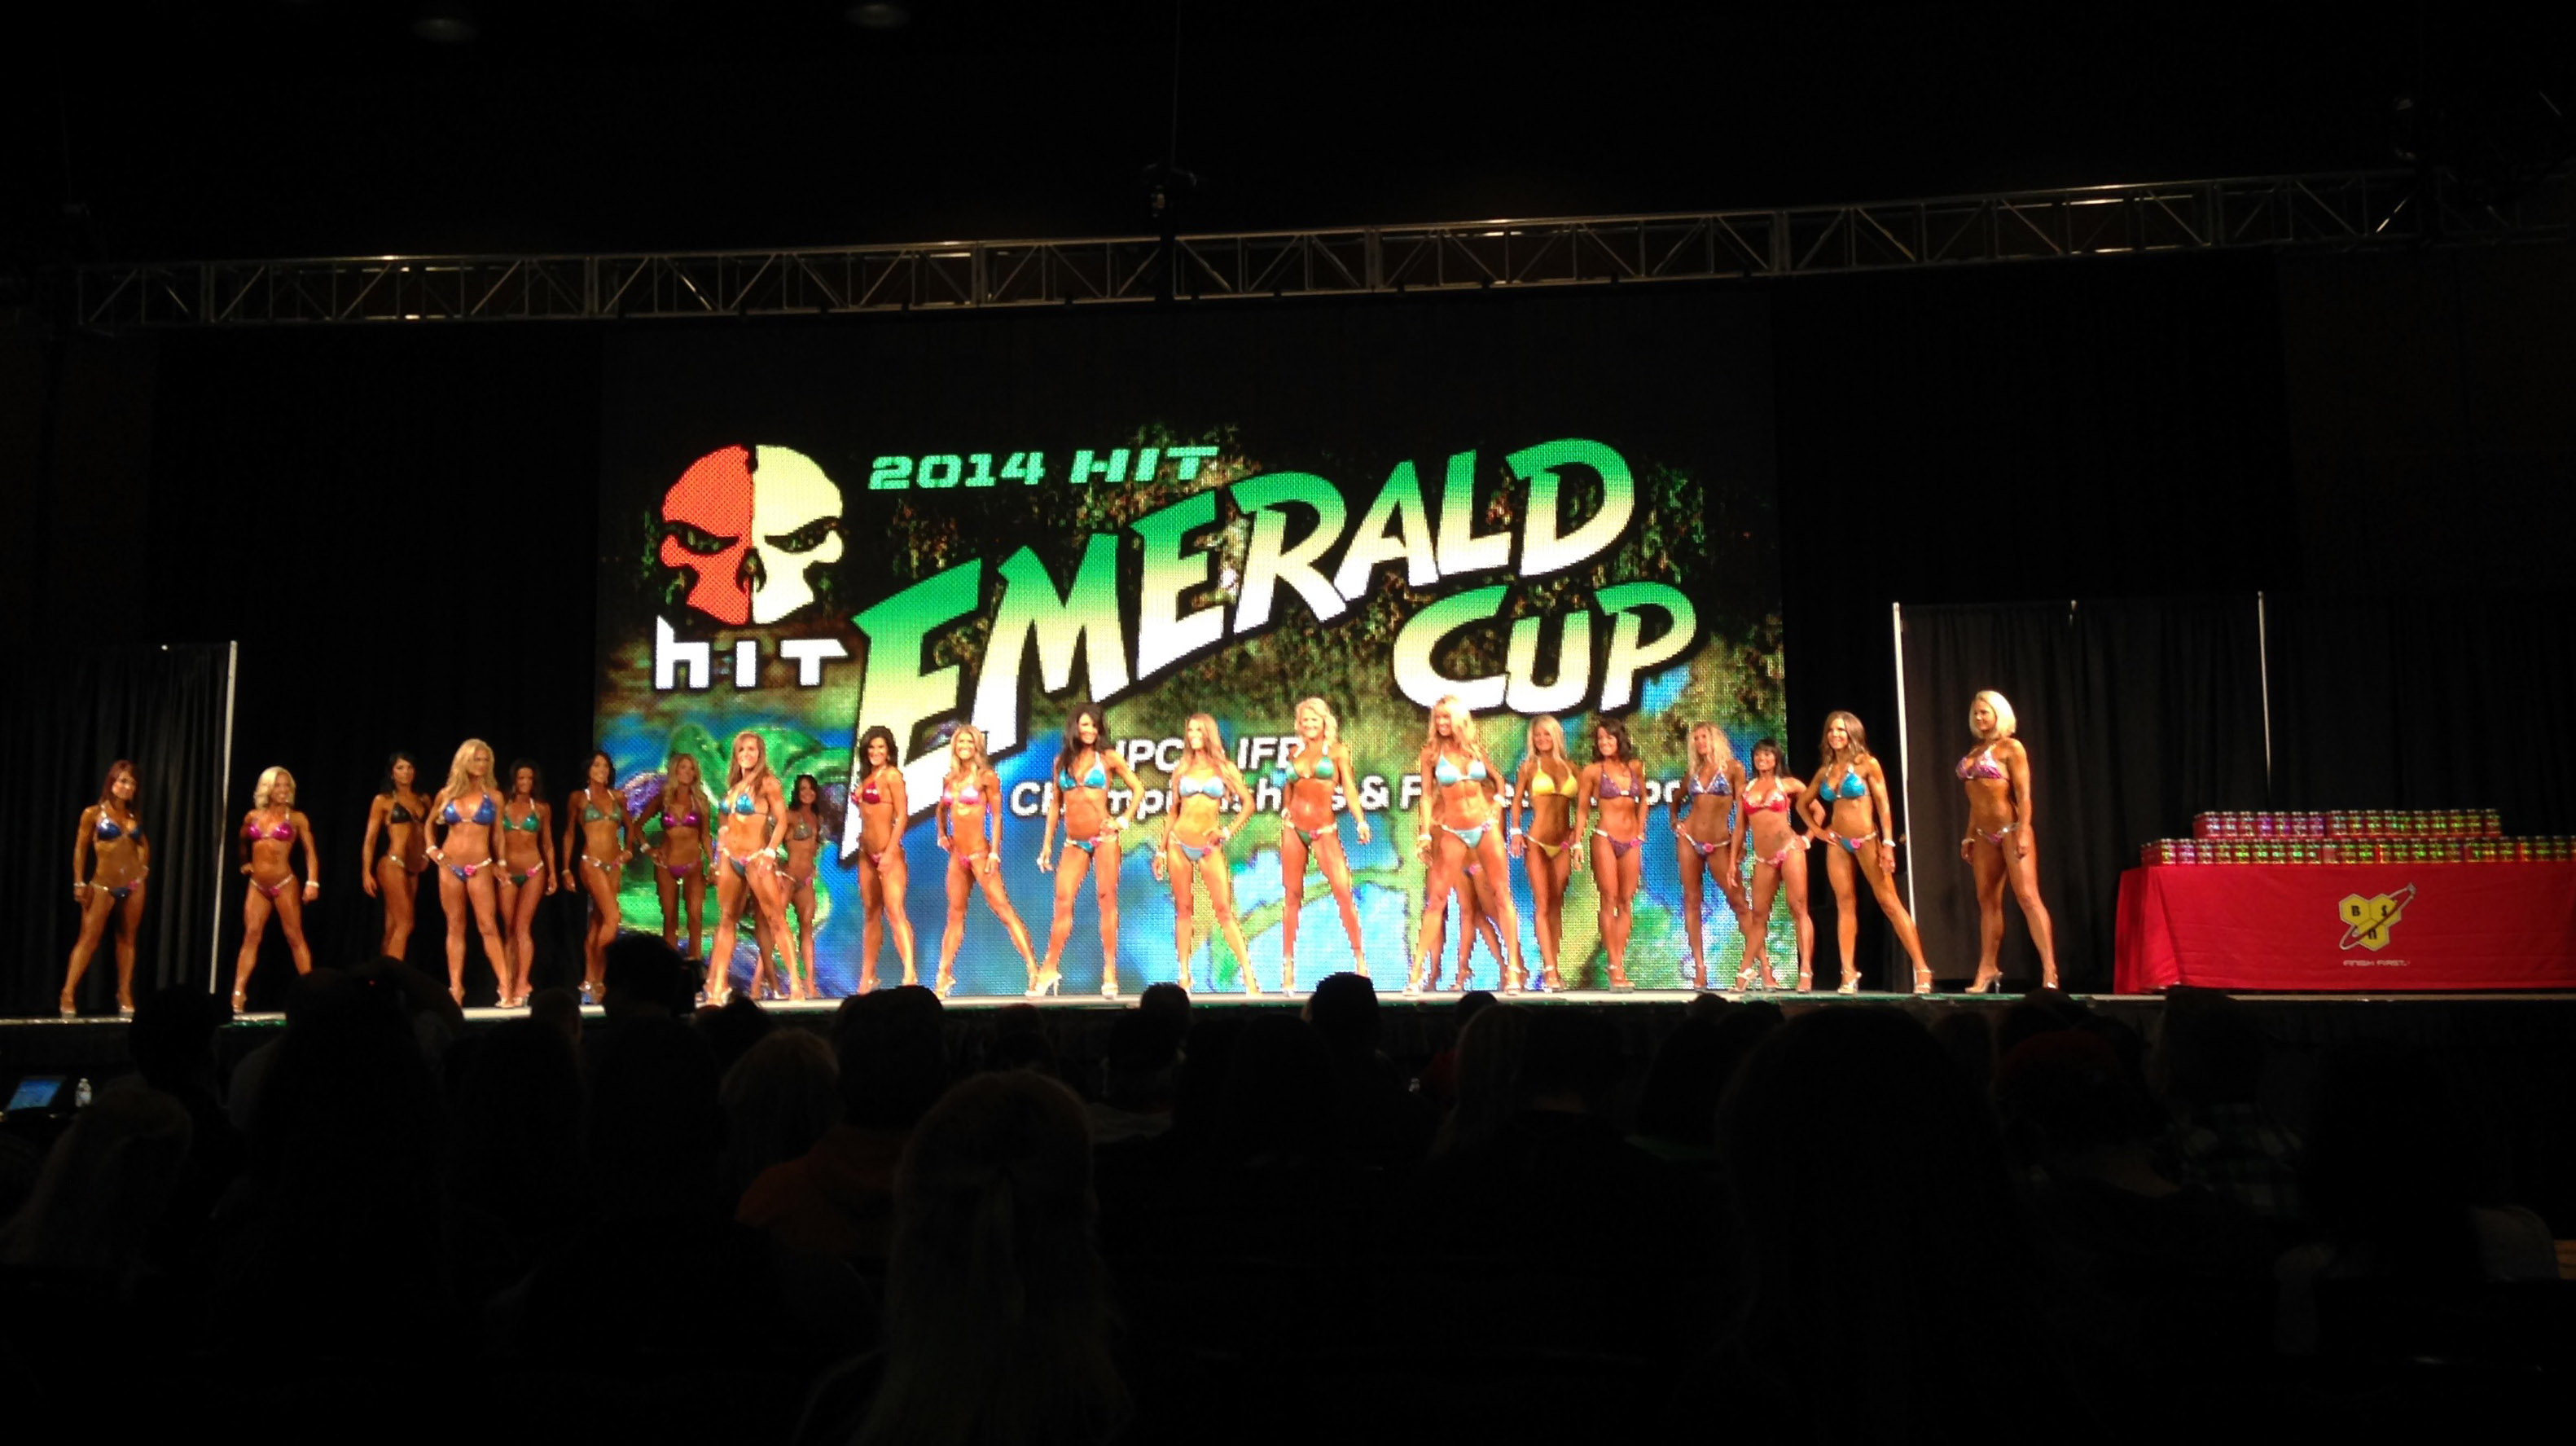 Emerald Cup LED video wall